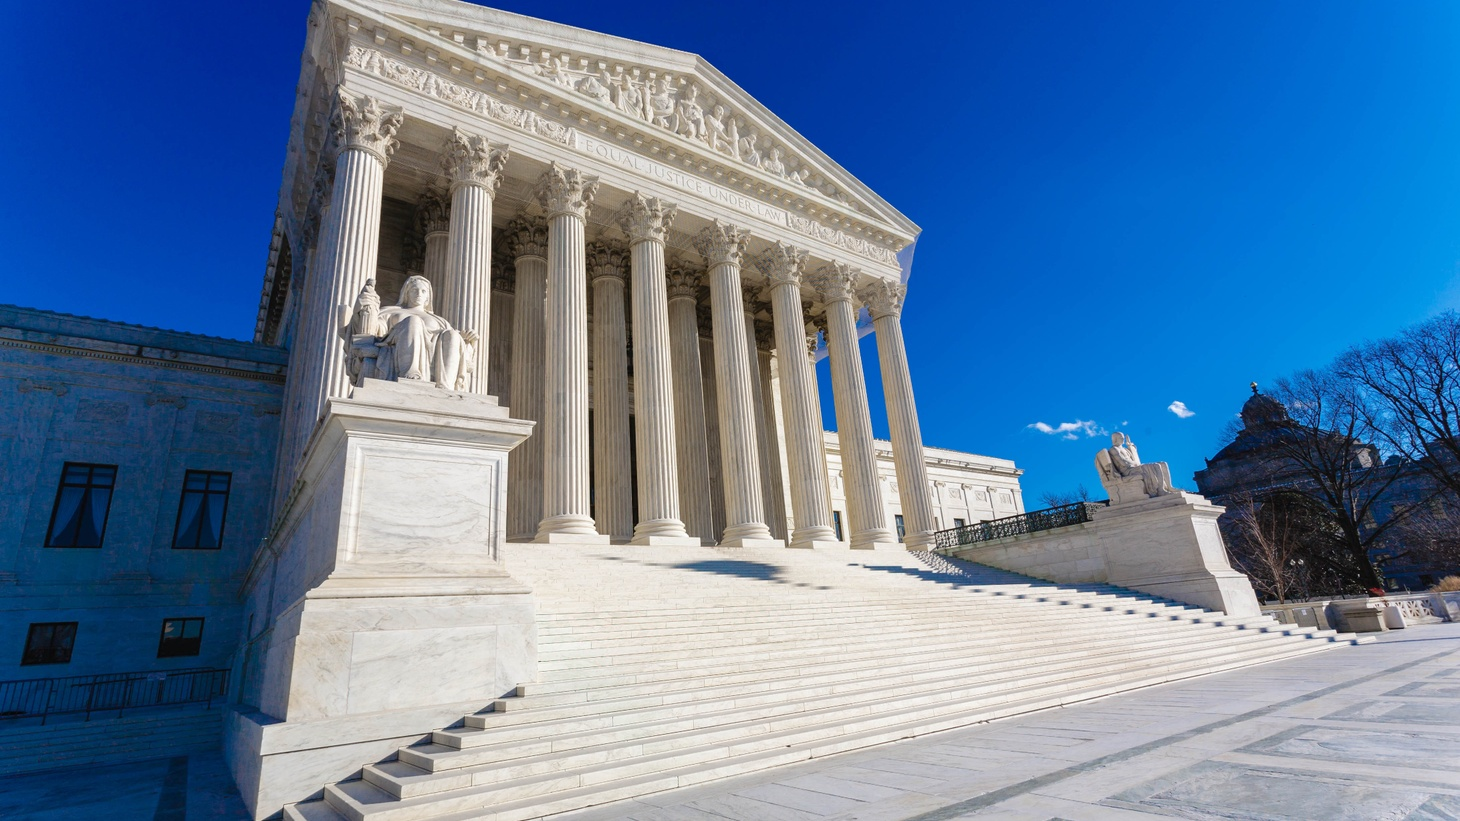 This is the last month of the current Supreme Court session. The next one begins in October.